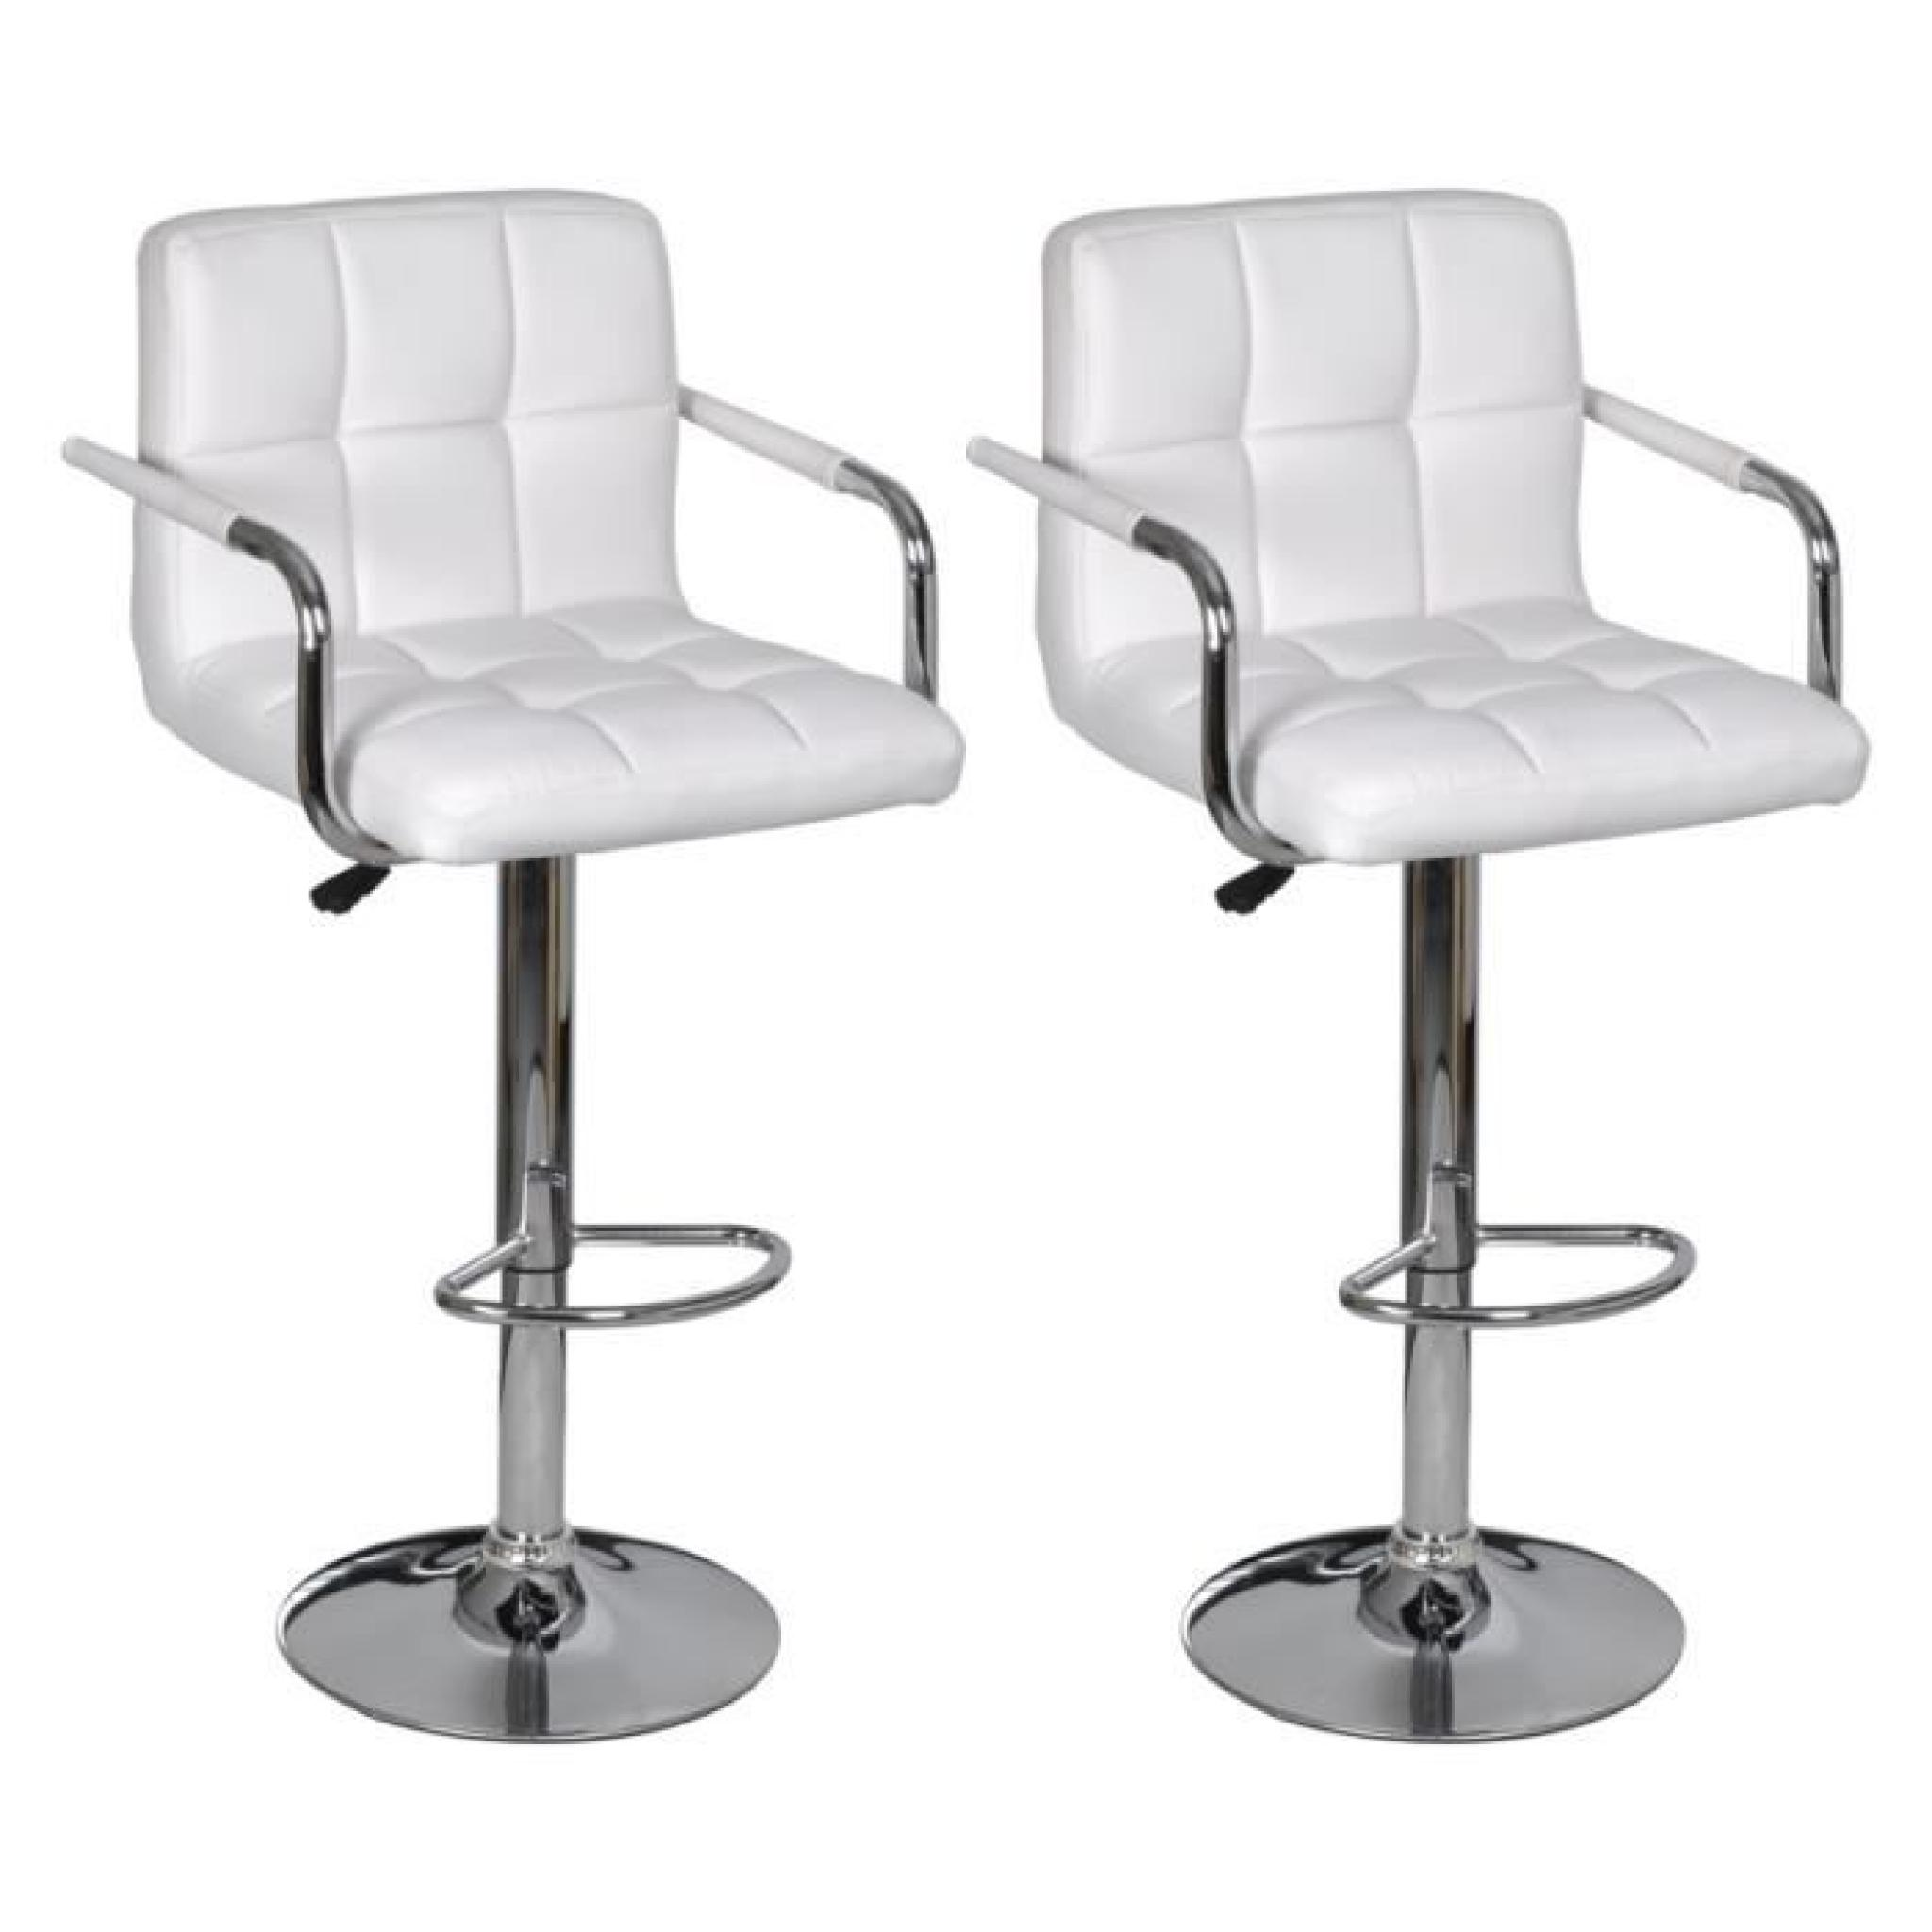 Lot De 2 Tabourets De Bar Christi Ii Lot De 2 Tabourets De Bar Pas Cher Lot De 2 Tabourets De